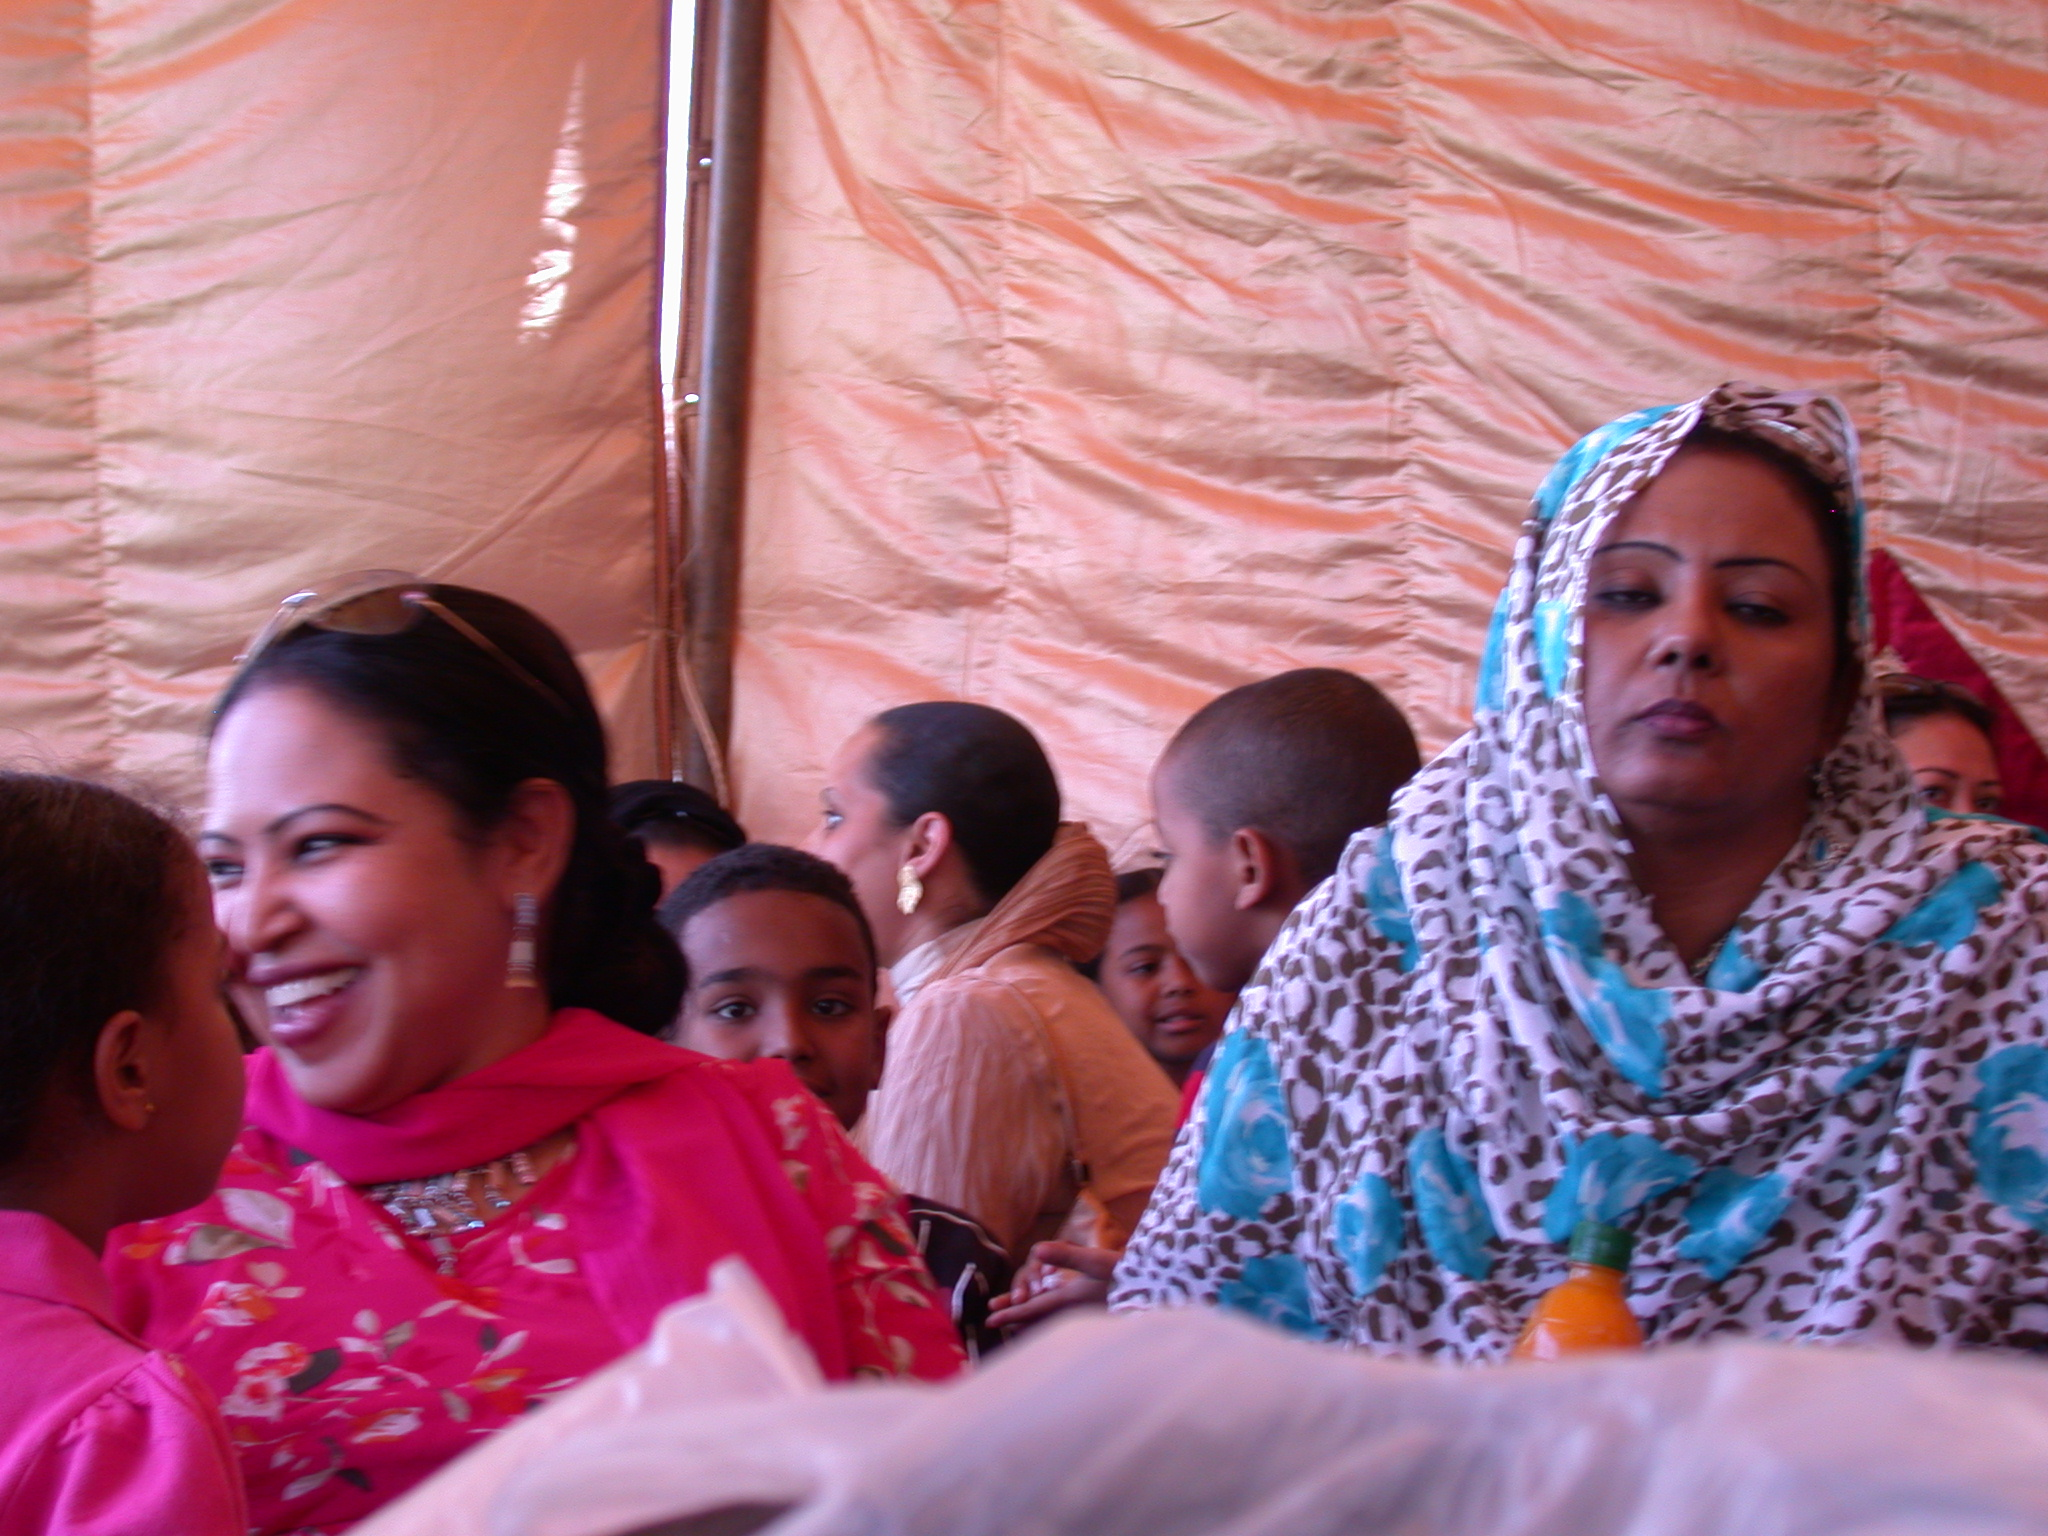 Women at International Charity Fair, Khartoum, Sudan